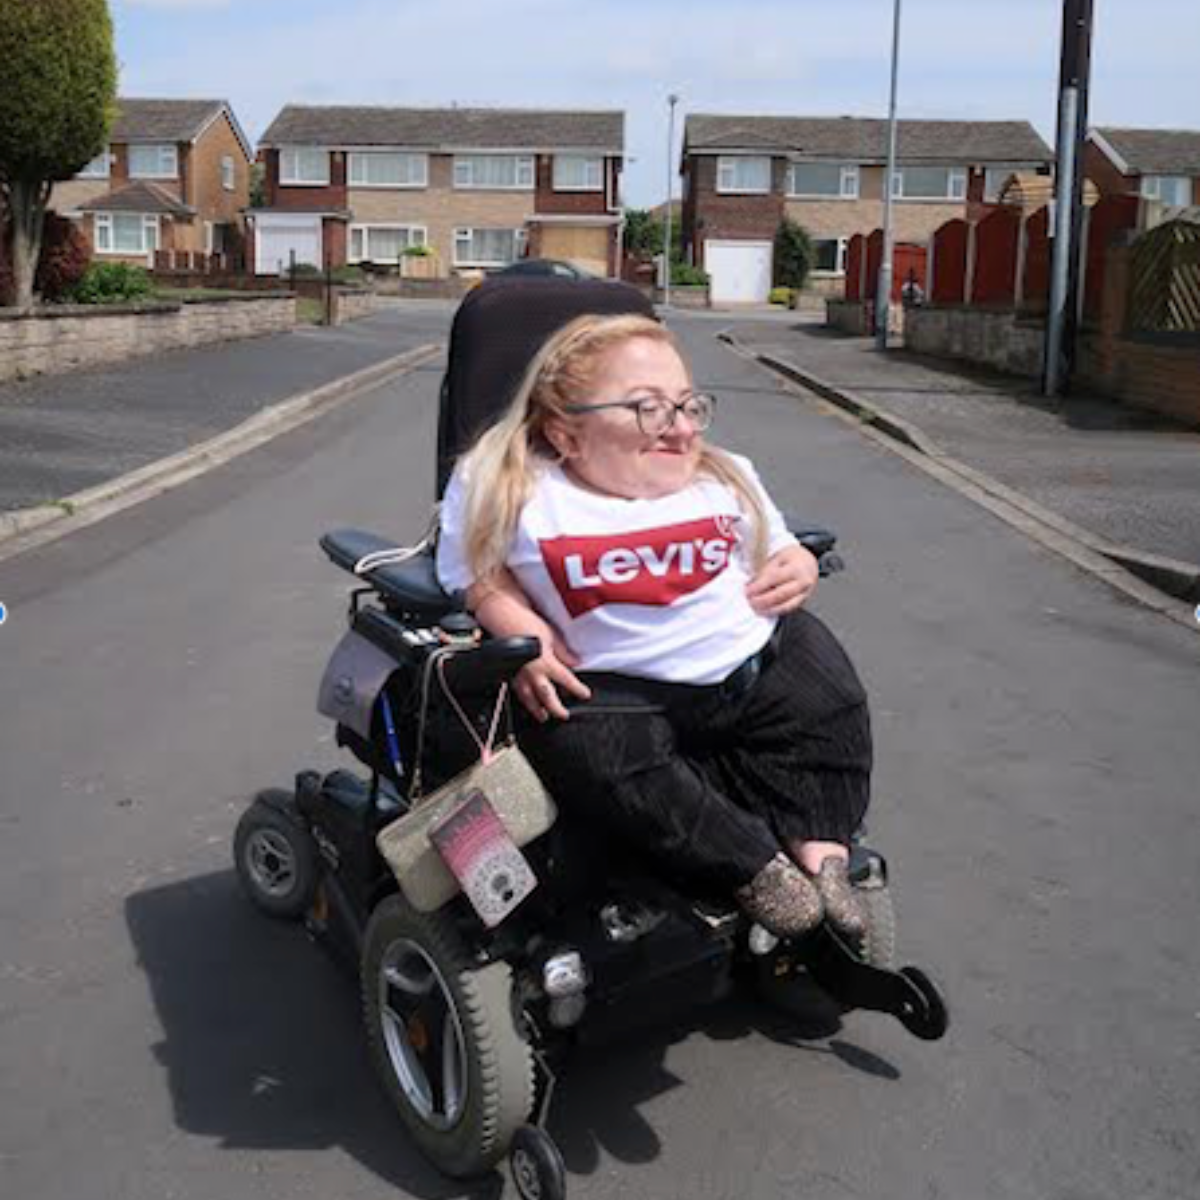 gem has blonde har and glasses, and is sat in powerchair smiling and looking to the right, wearing a levi's t-shirt. street roads and houses in background